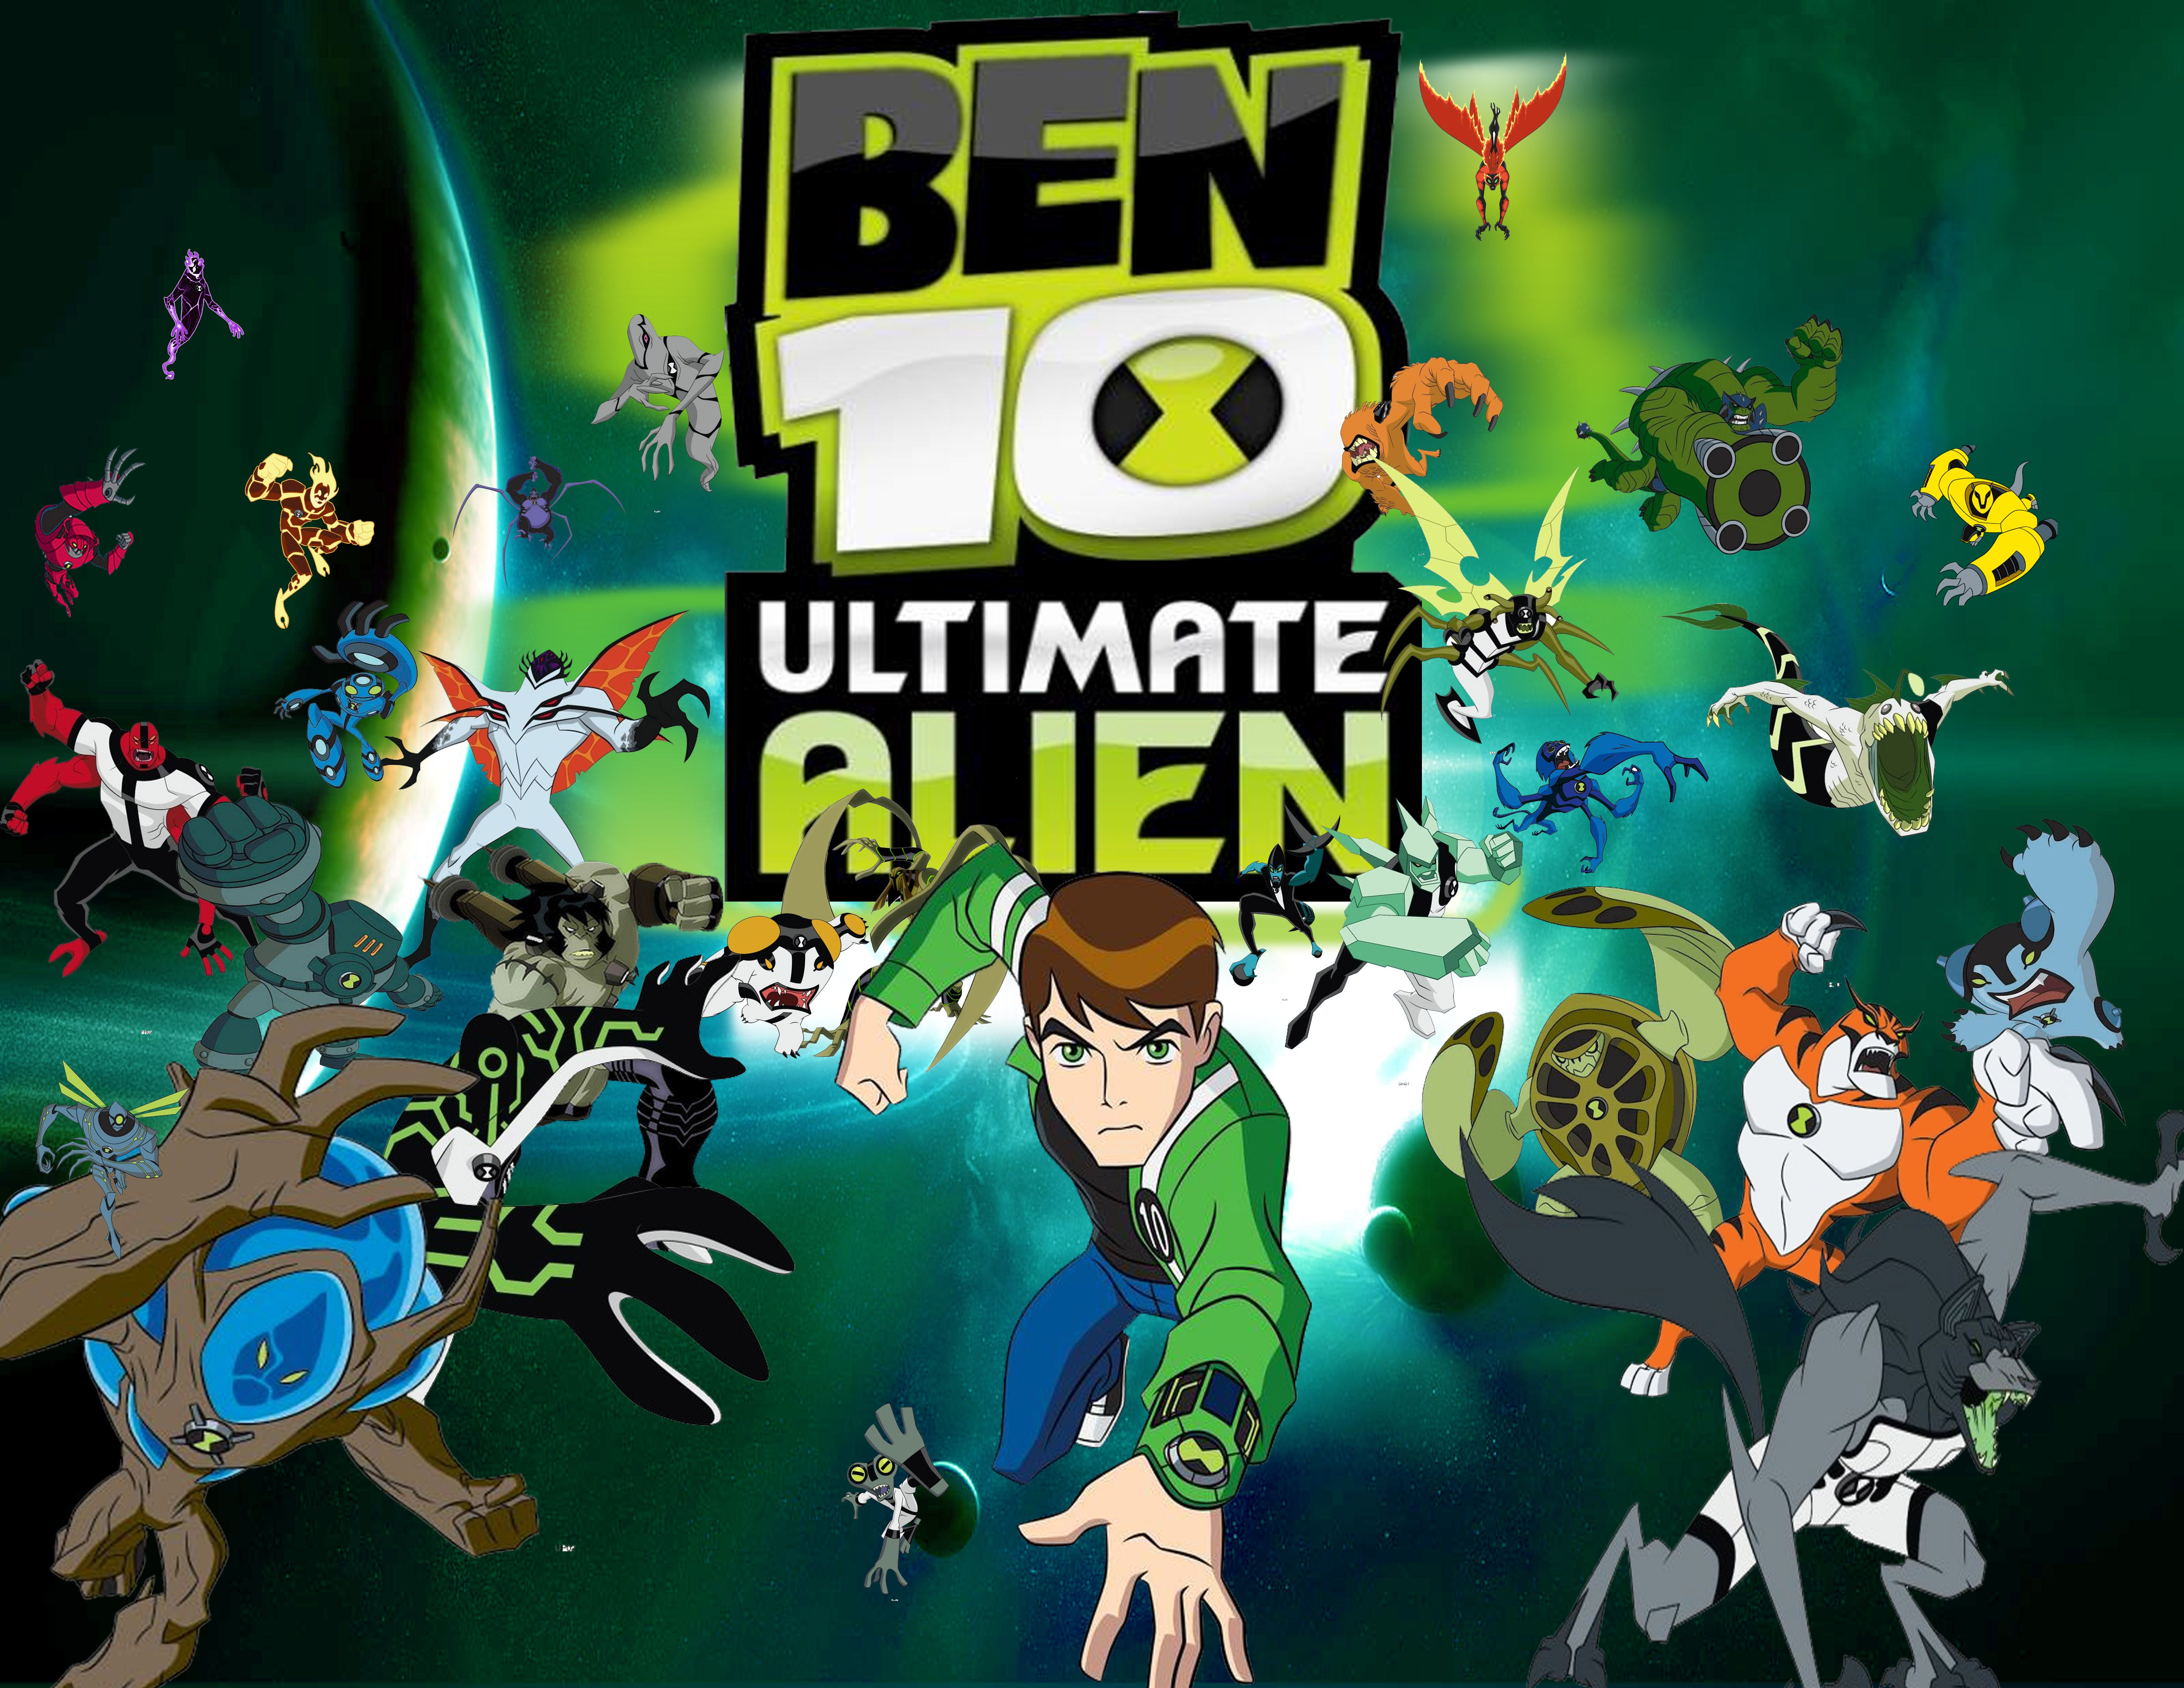 Be ben 10 games coloring game online -